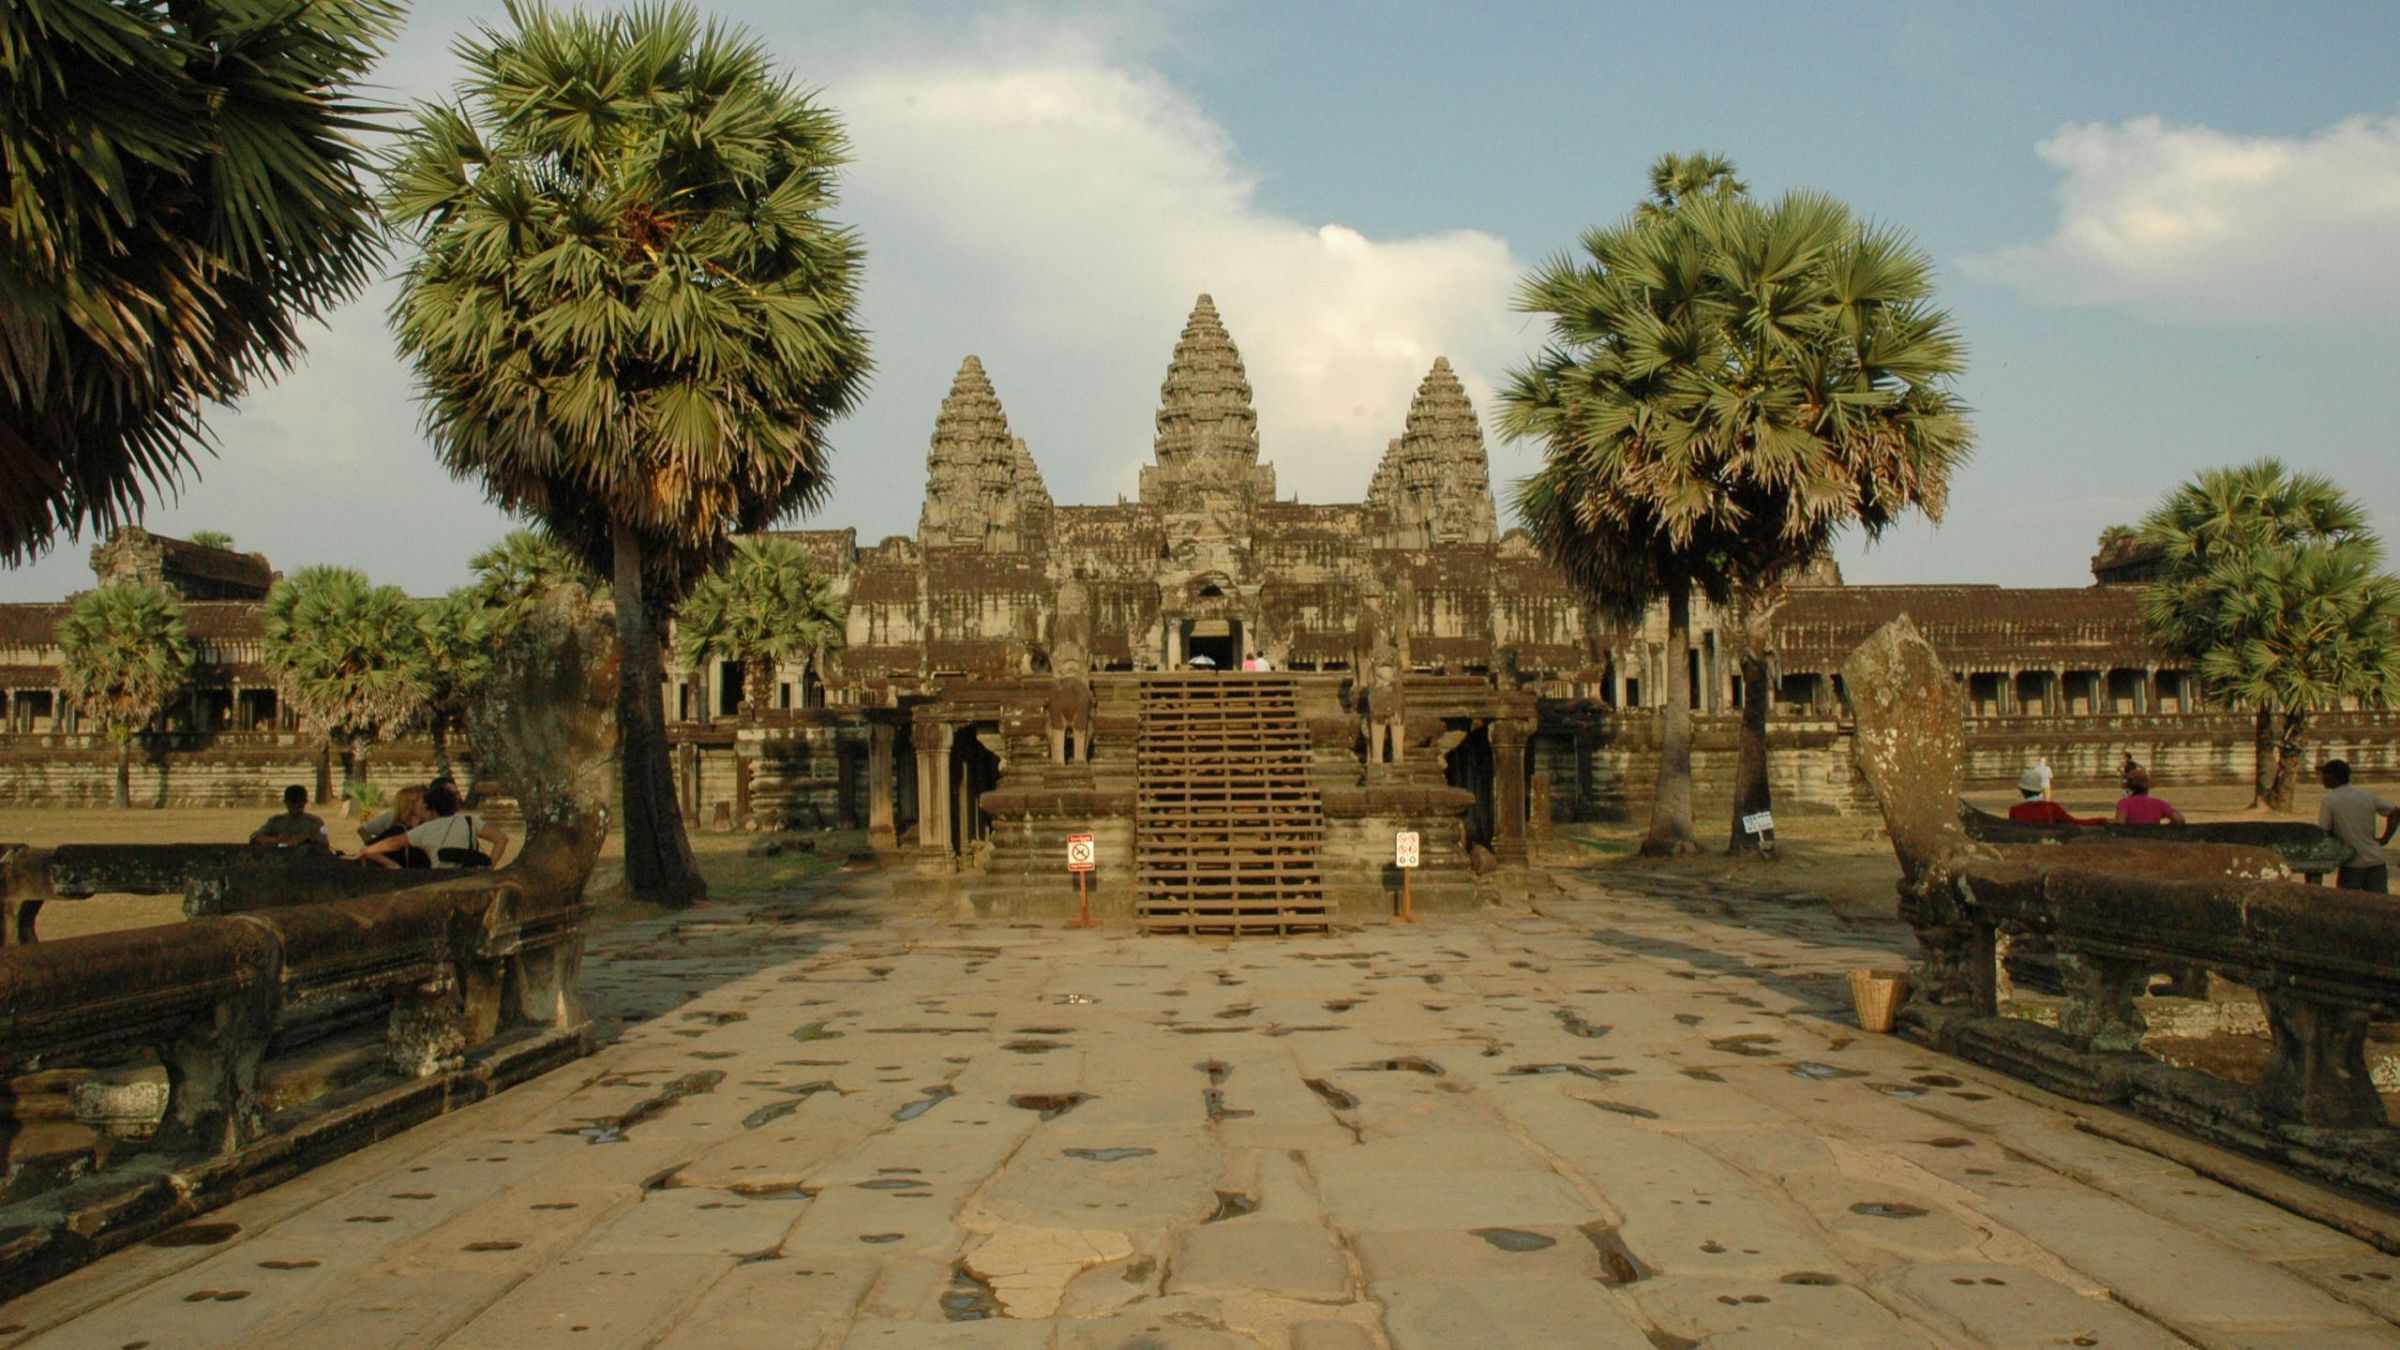 Angkor Wat Beautiful